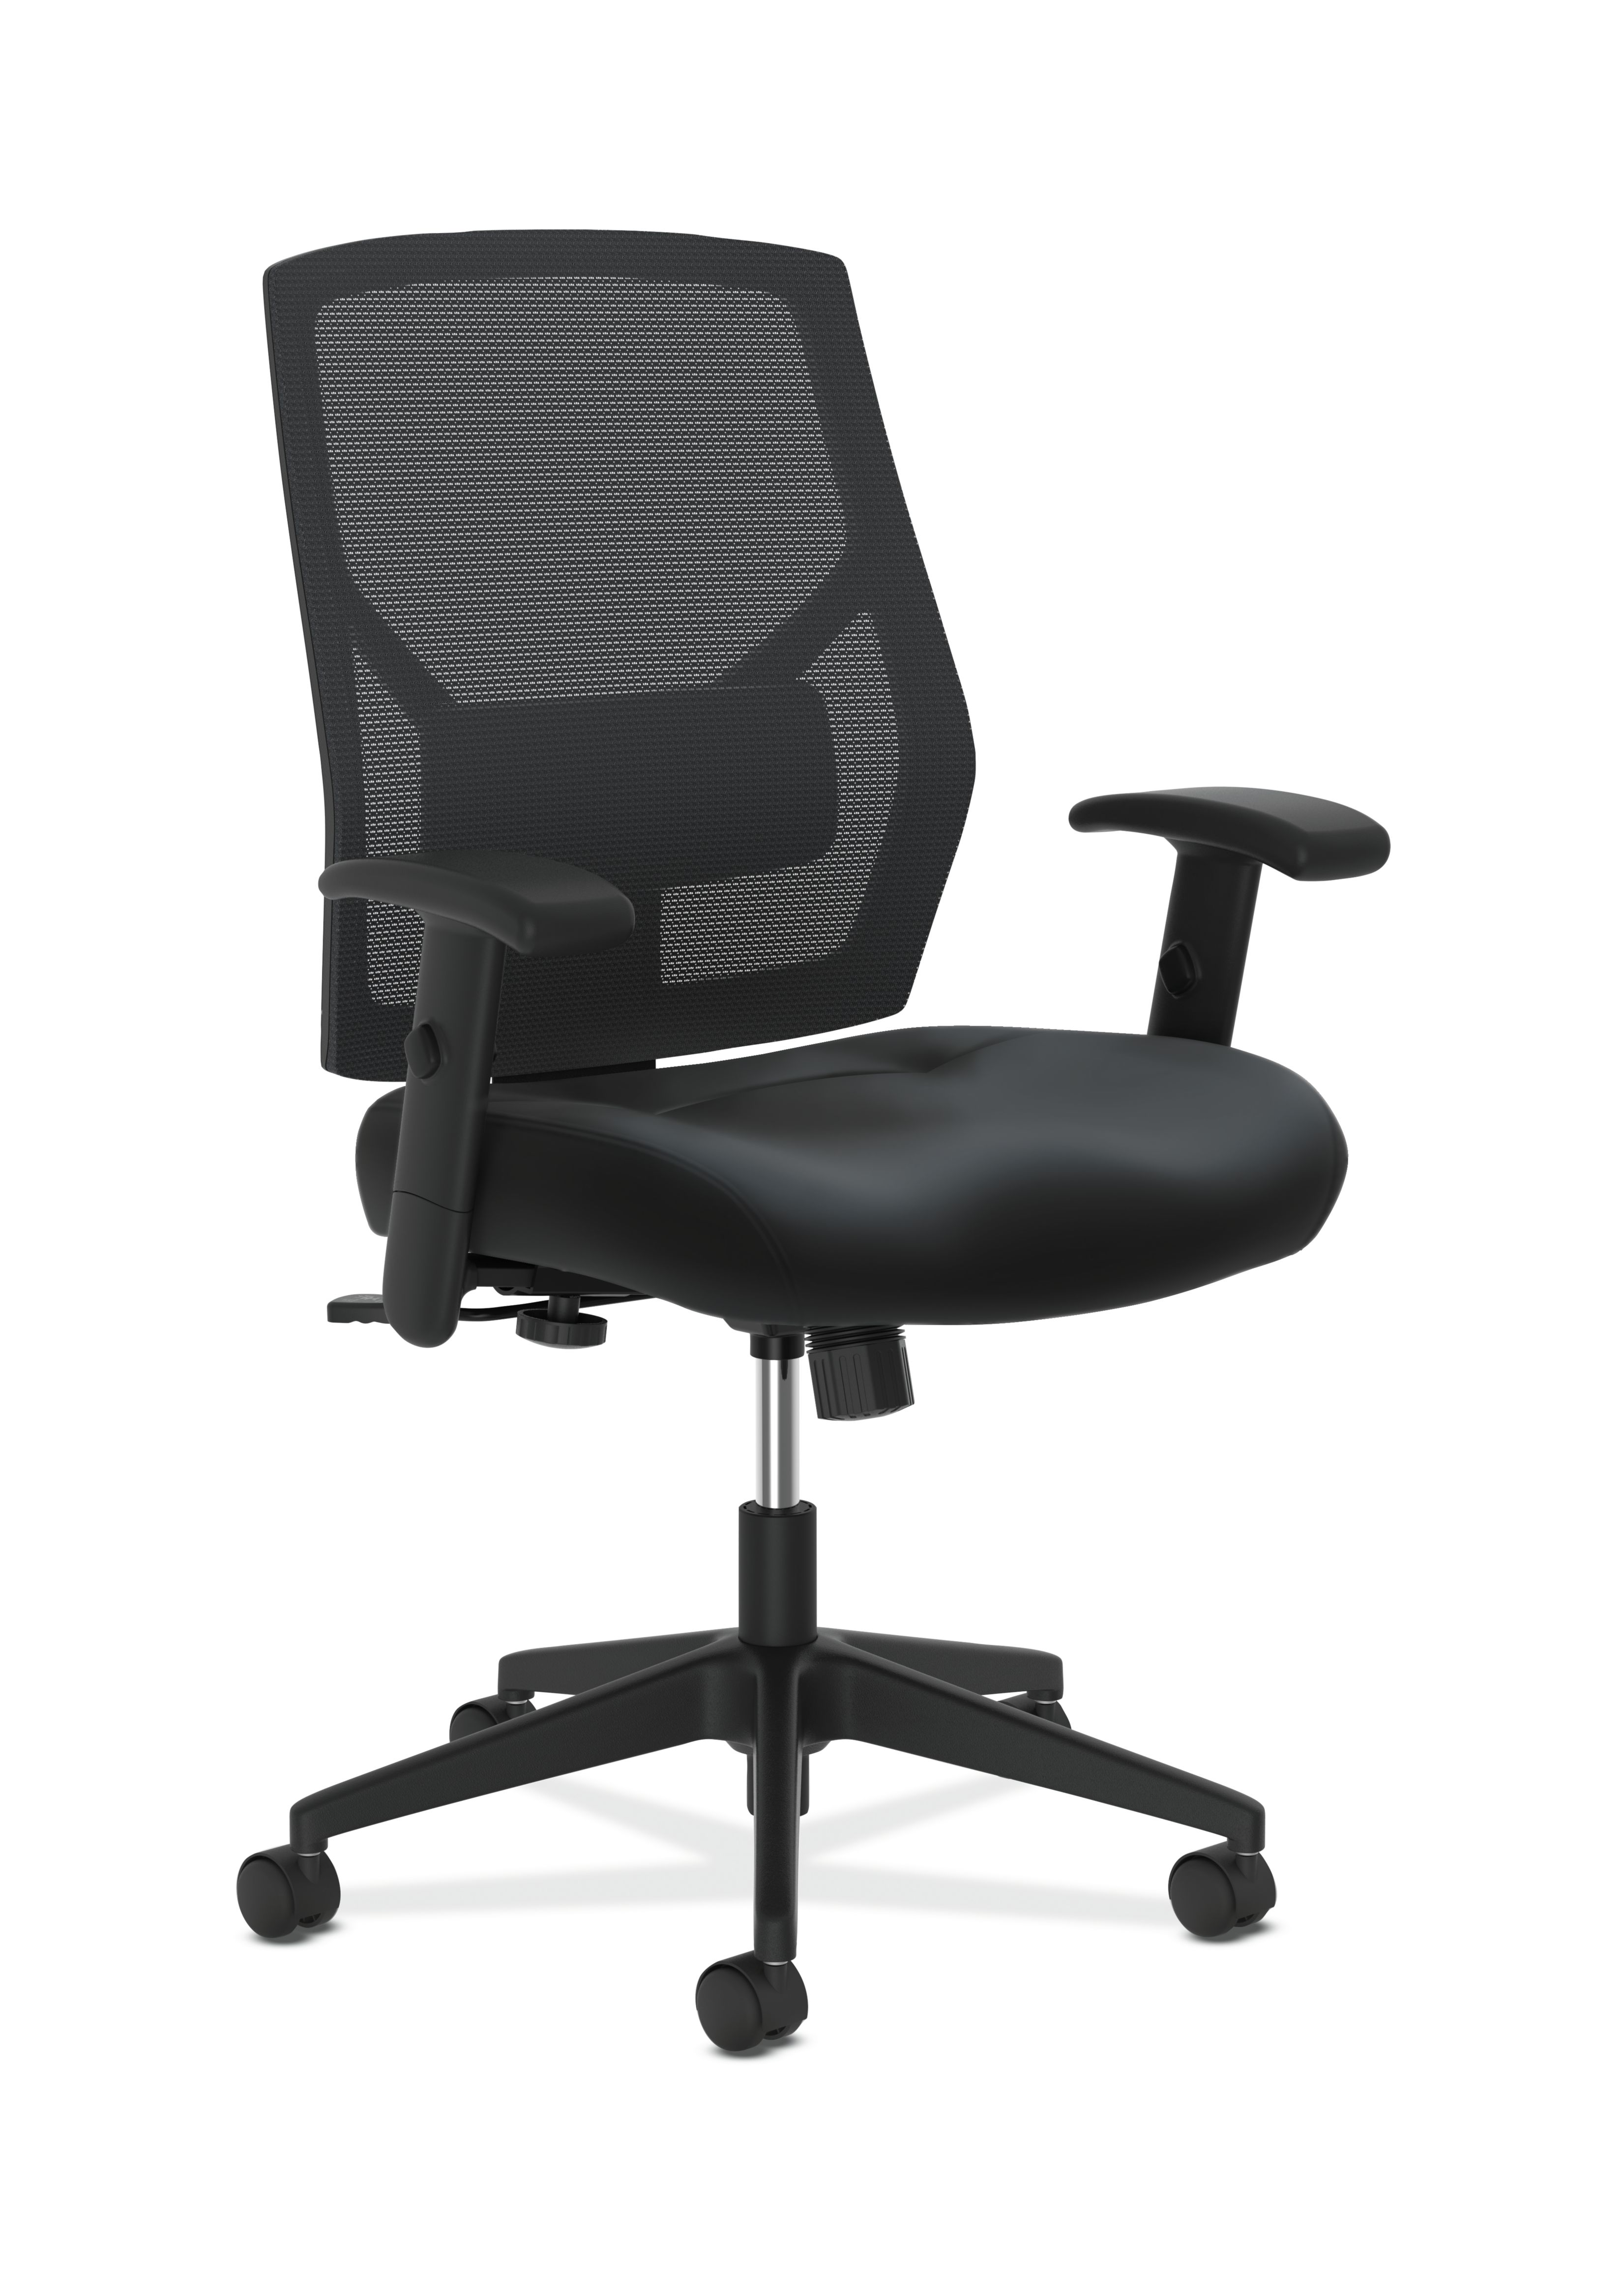 Hon crio high back task chair leather mesh back computer chair for office desk